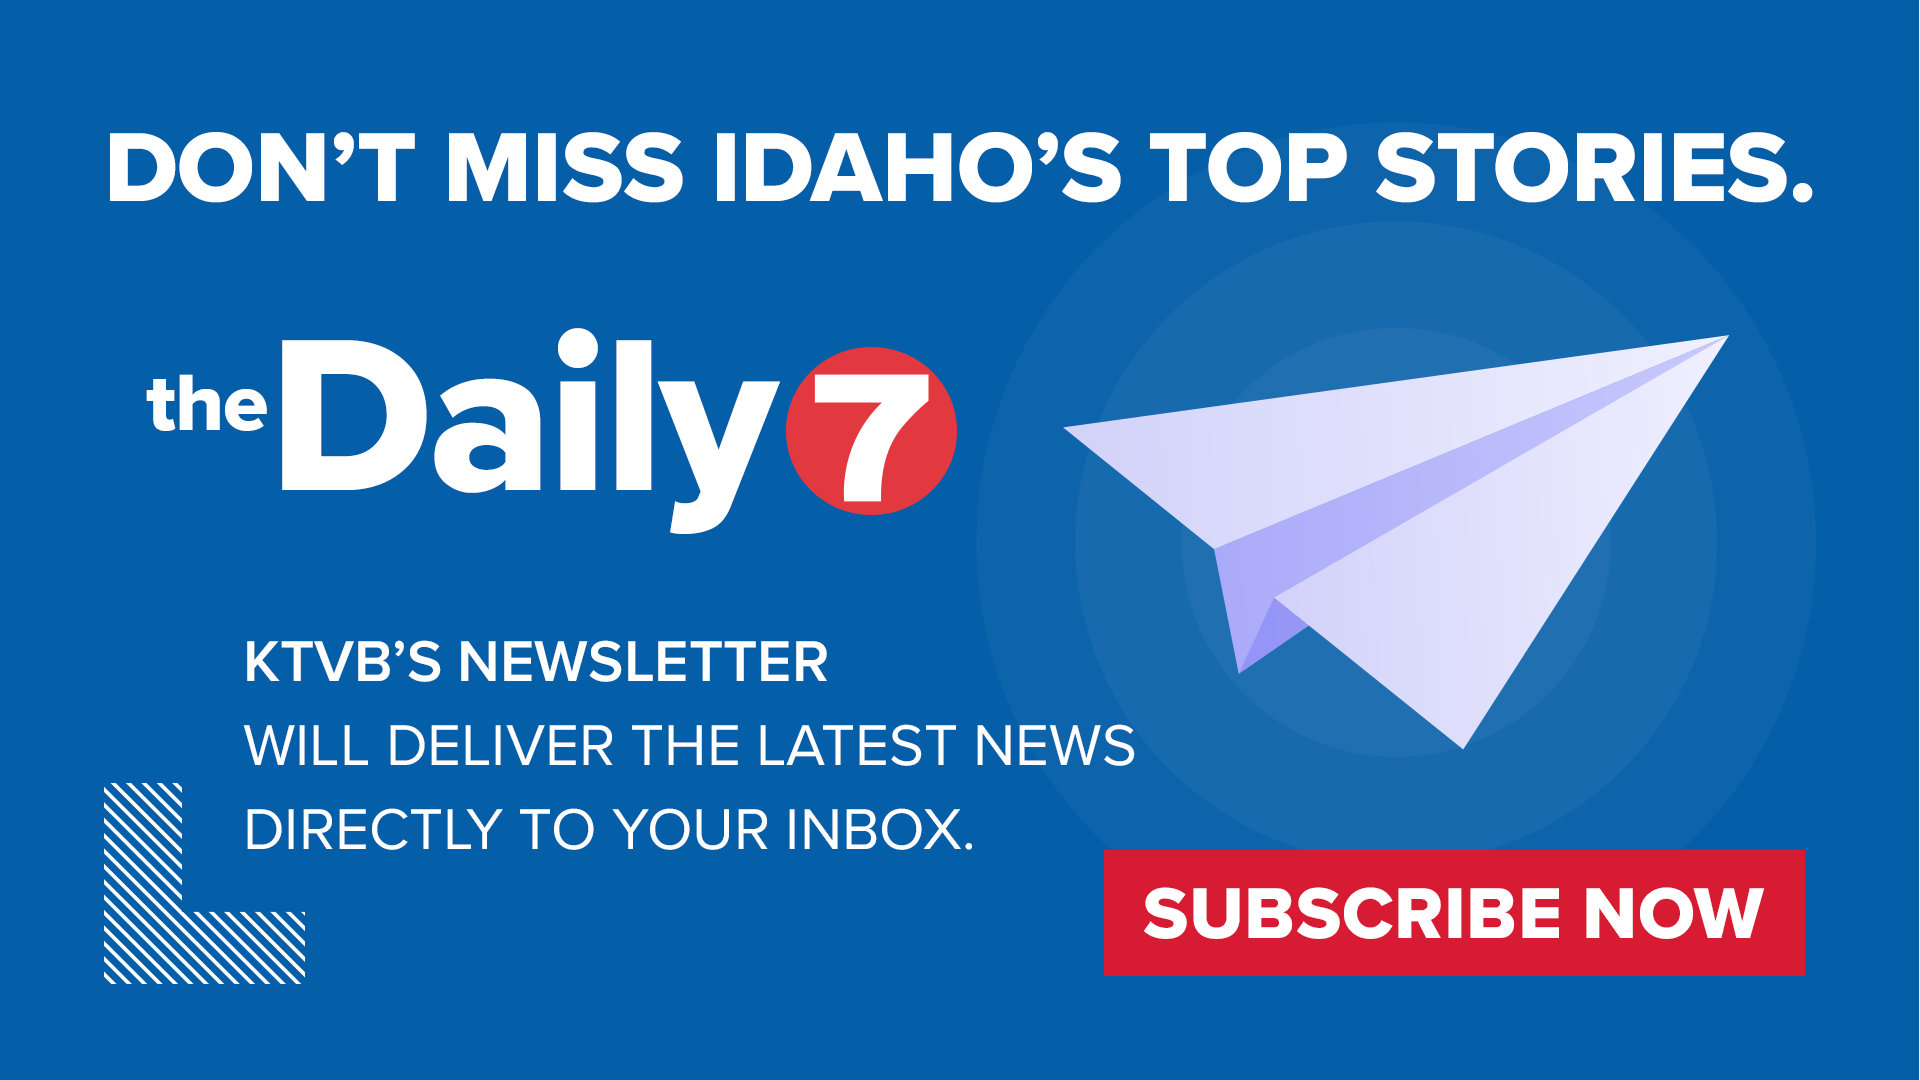 The Daily 7 Newsletter